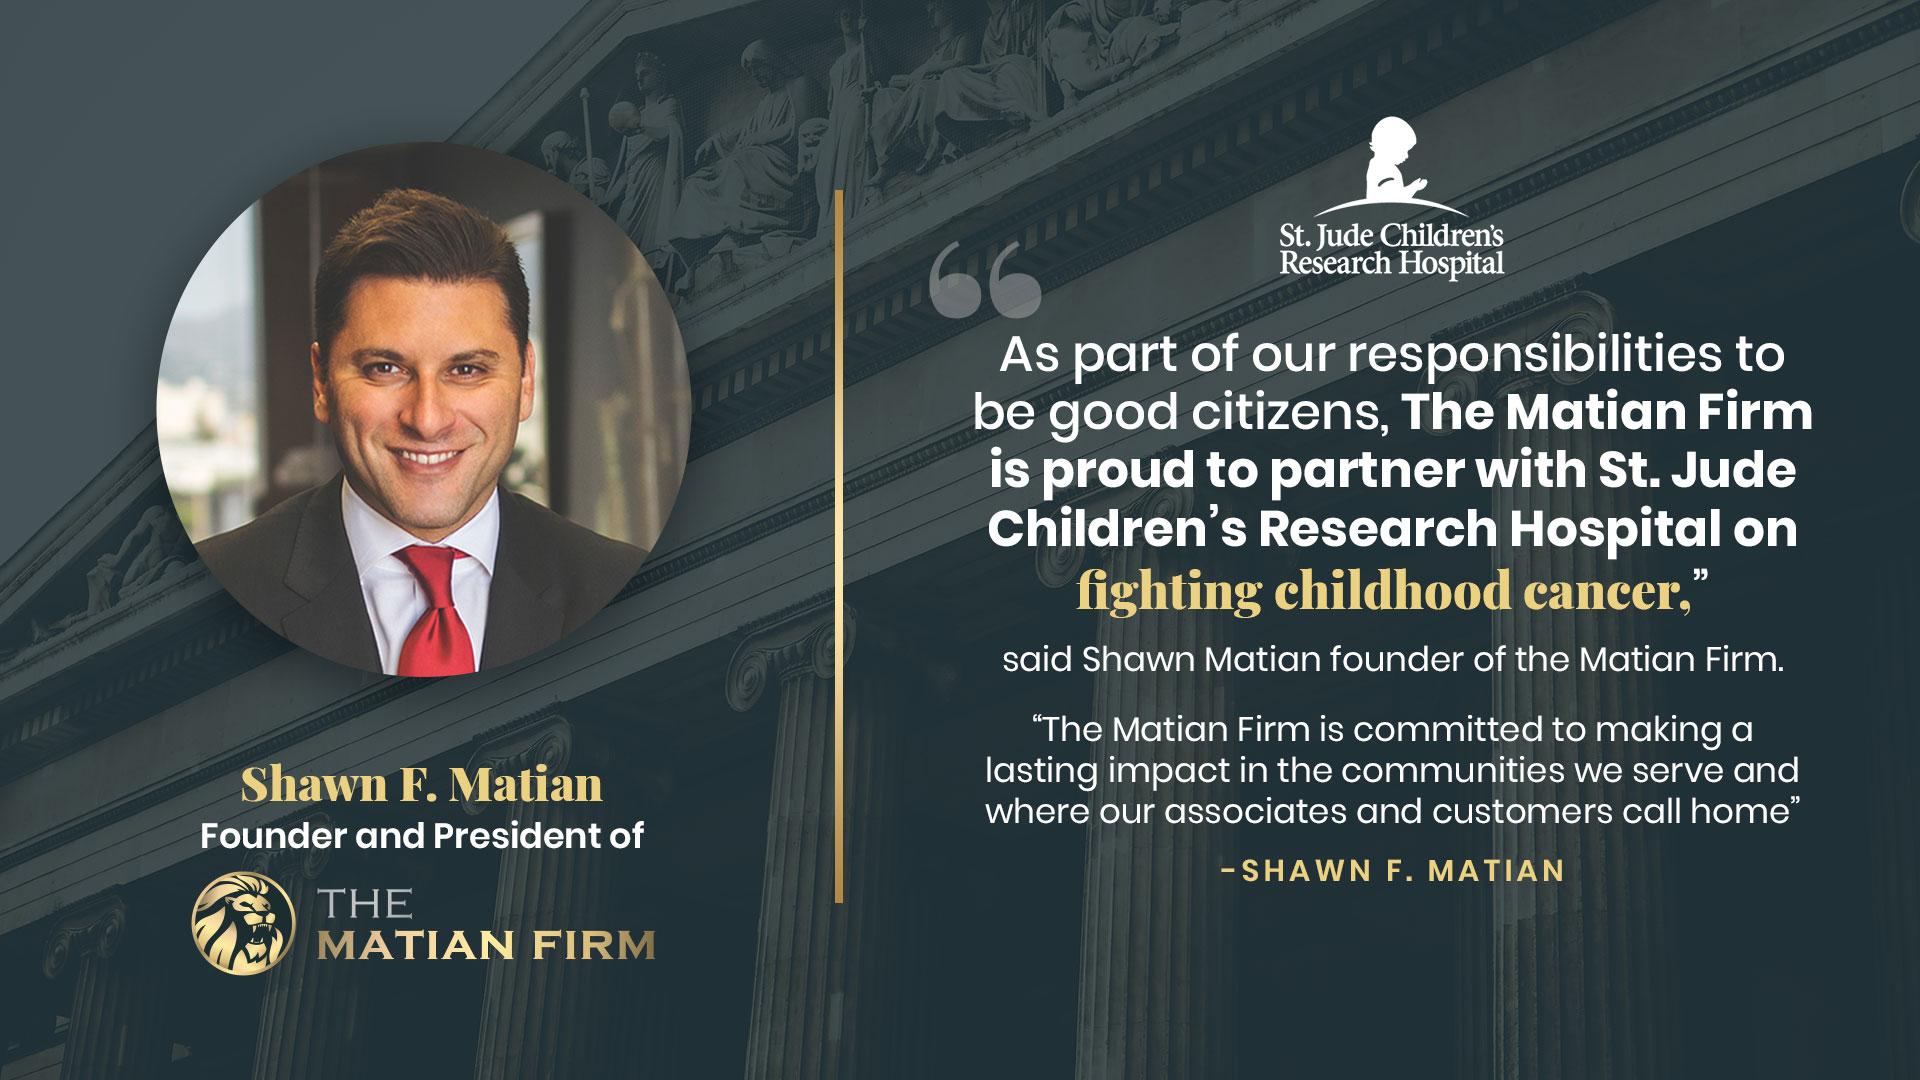 Shawn Matian, founder of The Matian Firm Donates to St. Jude Children's Research Hospital